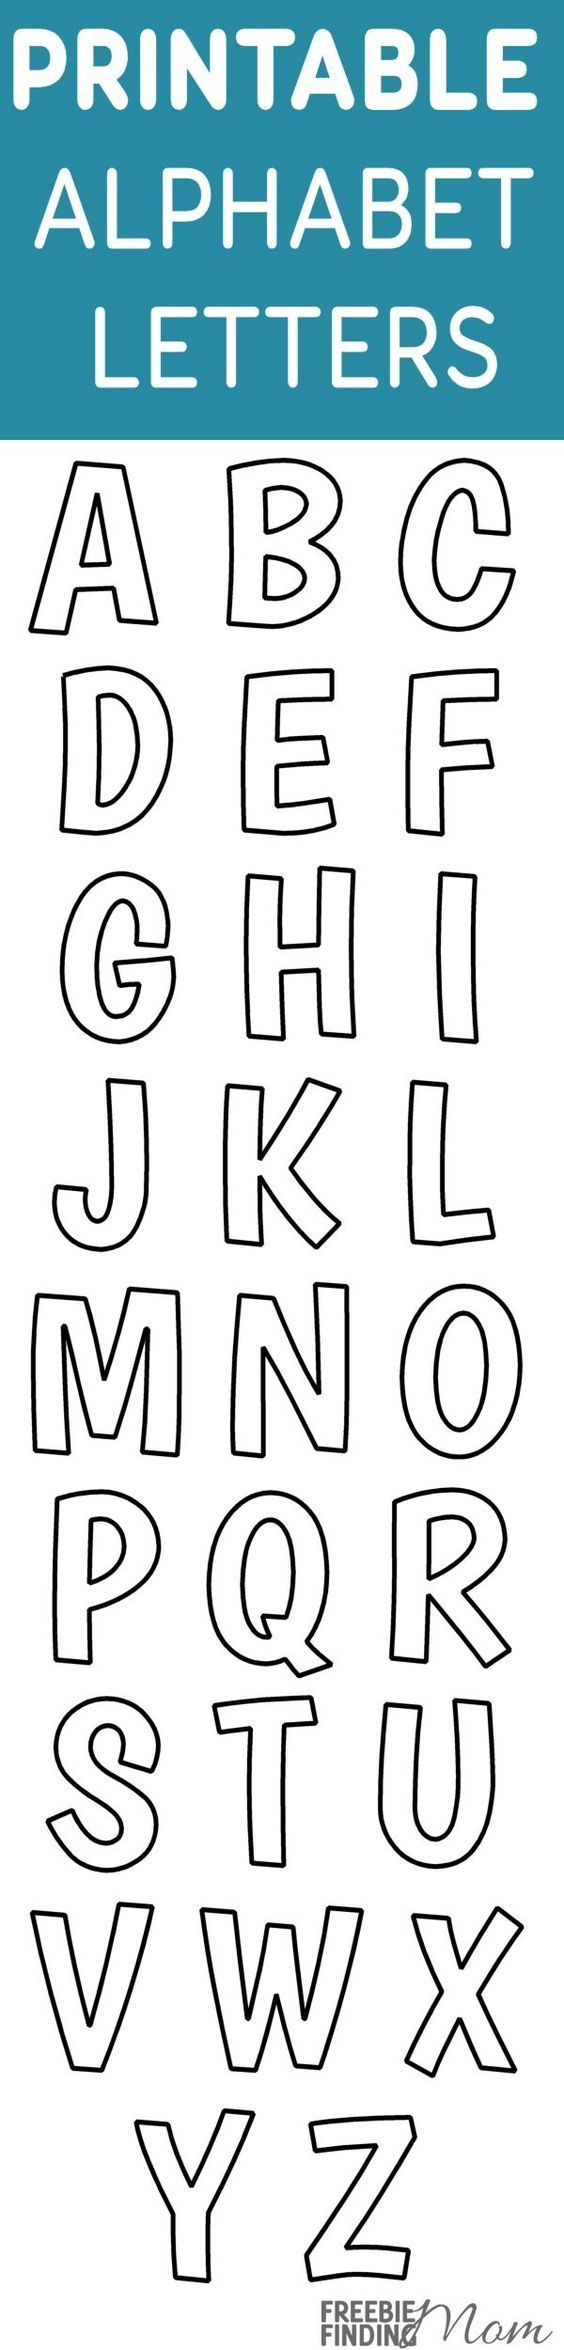 Printable Free Alphabet Templates | The Group Board On Pinterest - Free Printable Letter Stencils